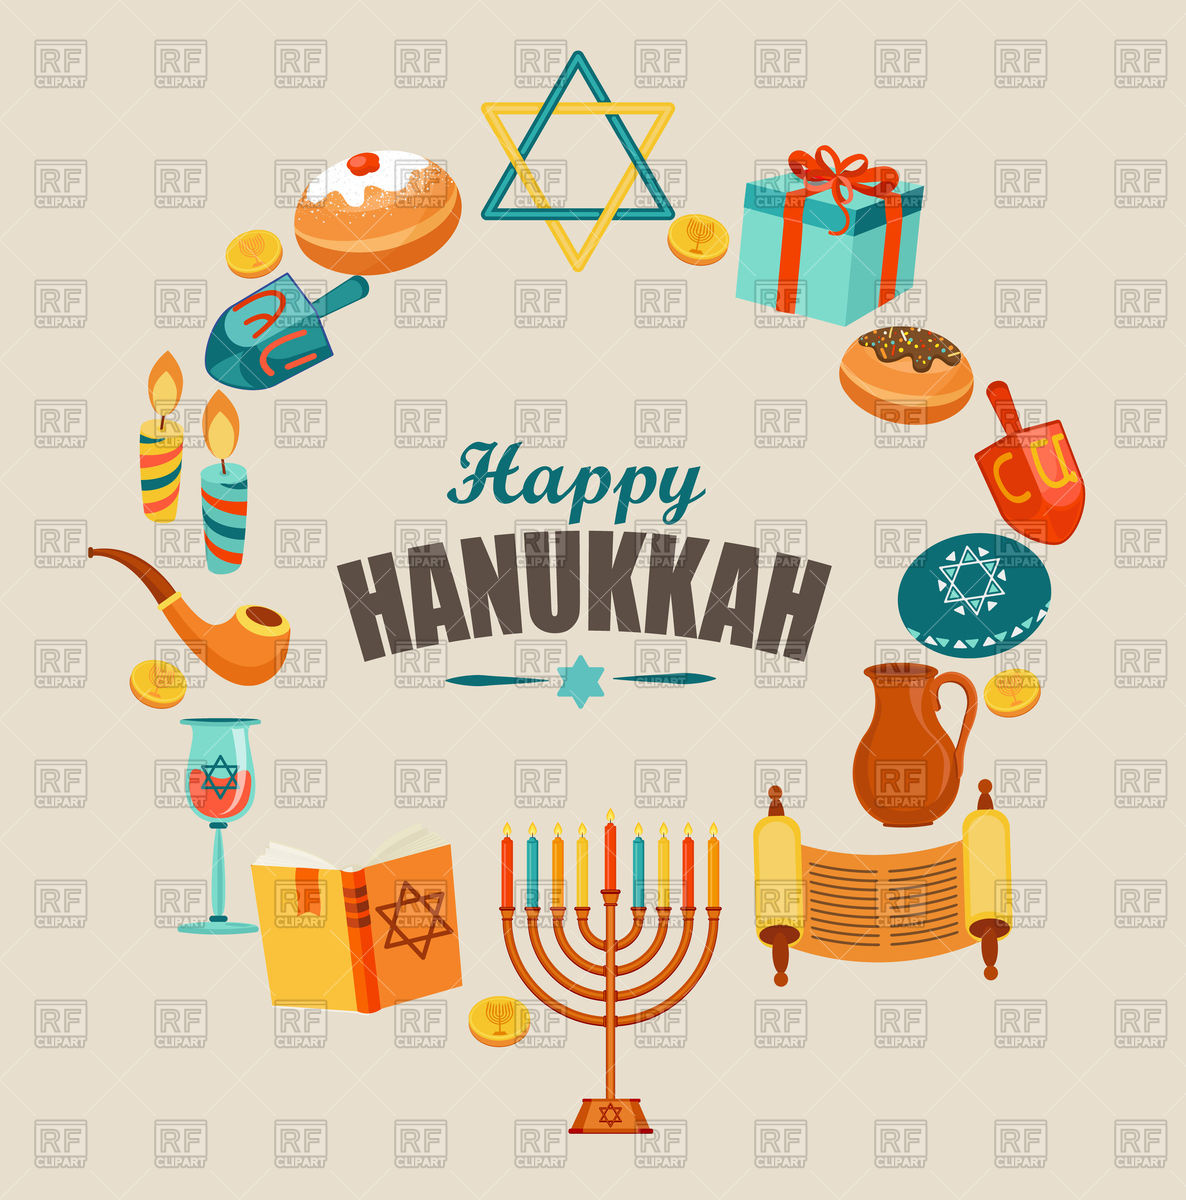 Happy Hanukkah card template or banner.